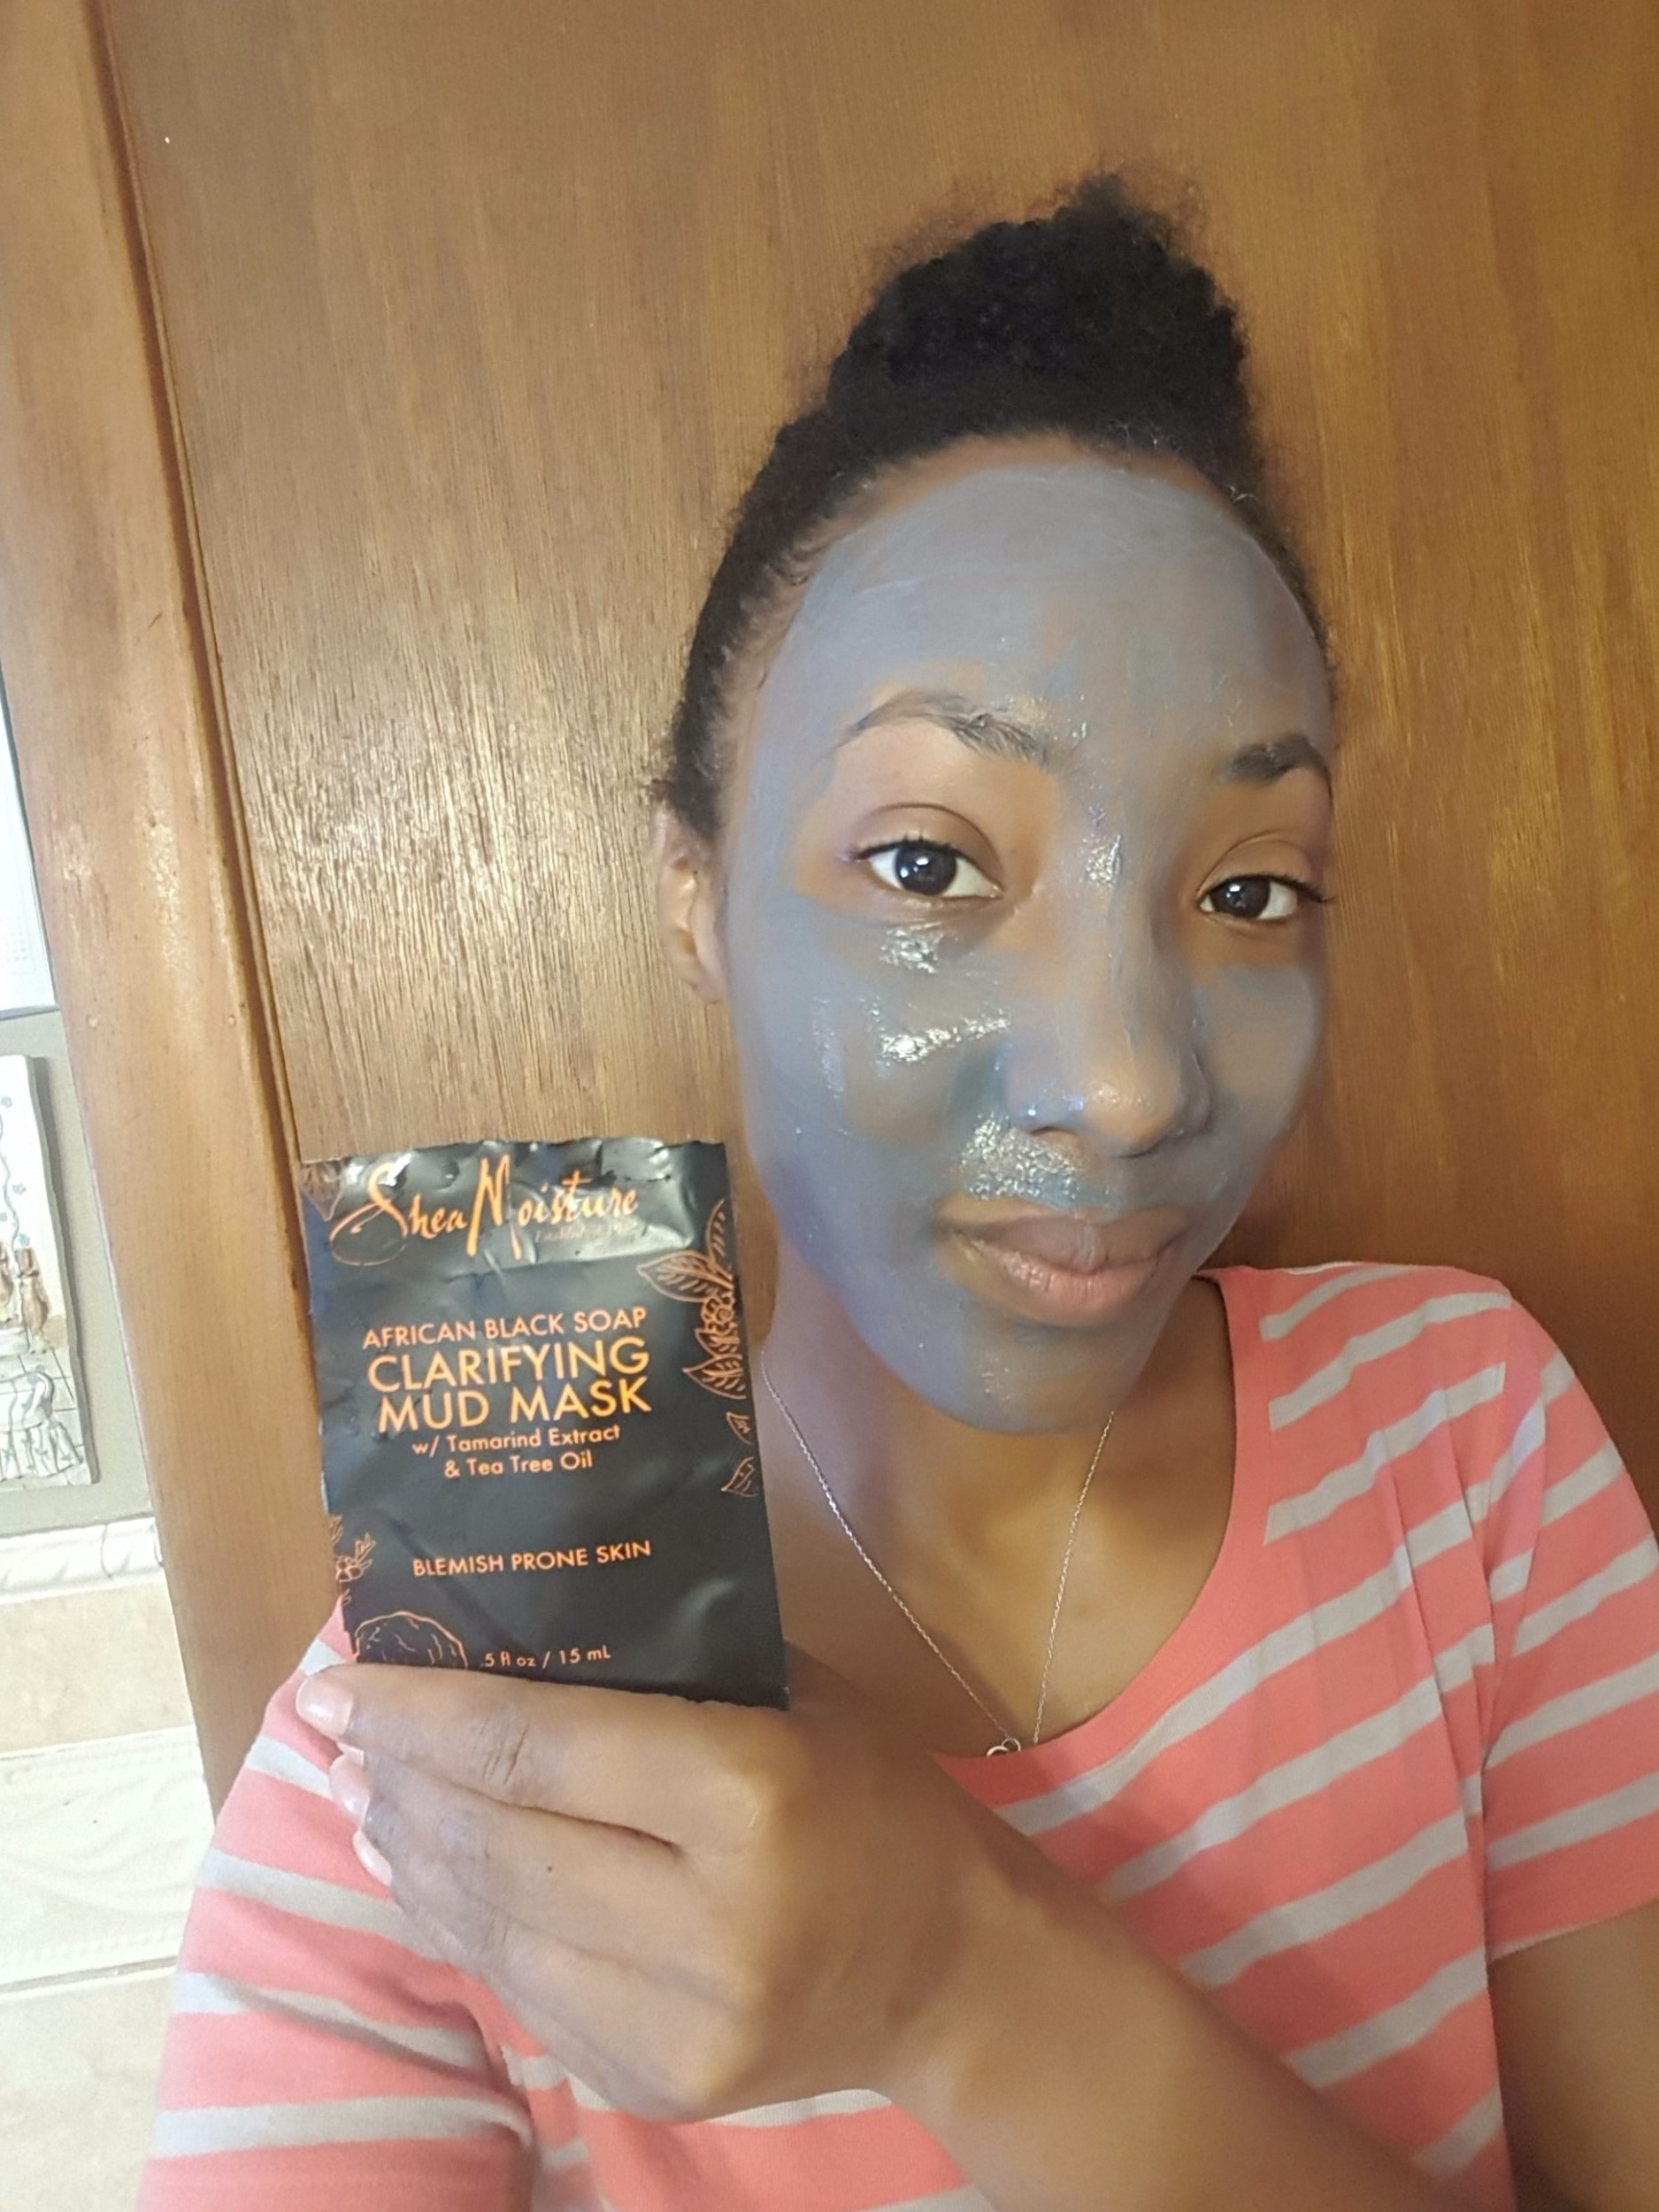 African Black Soap Clarifying Mud Mask by SheaMoisture #15